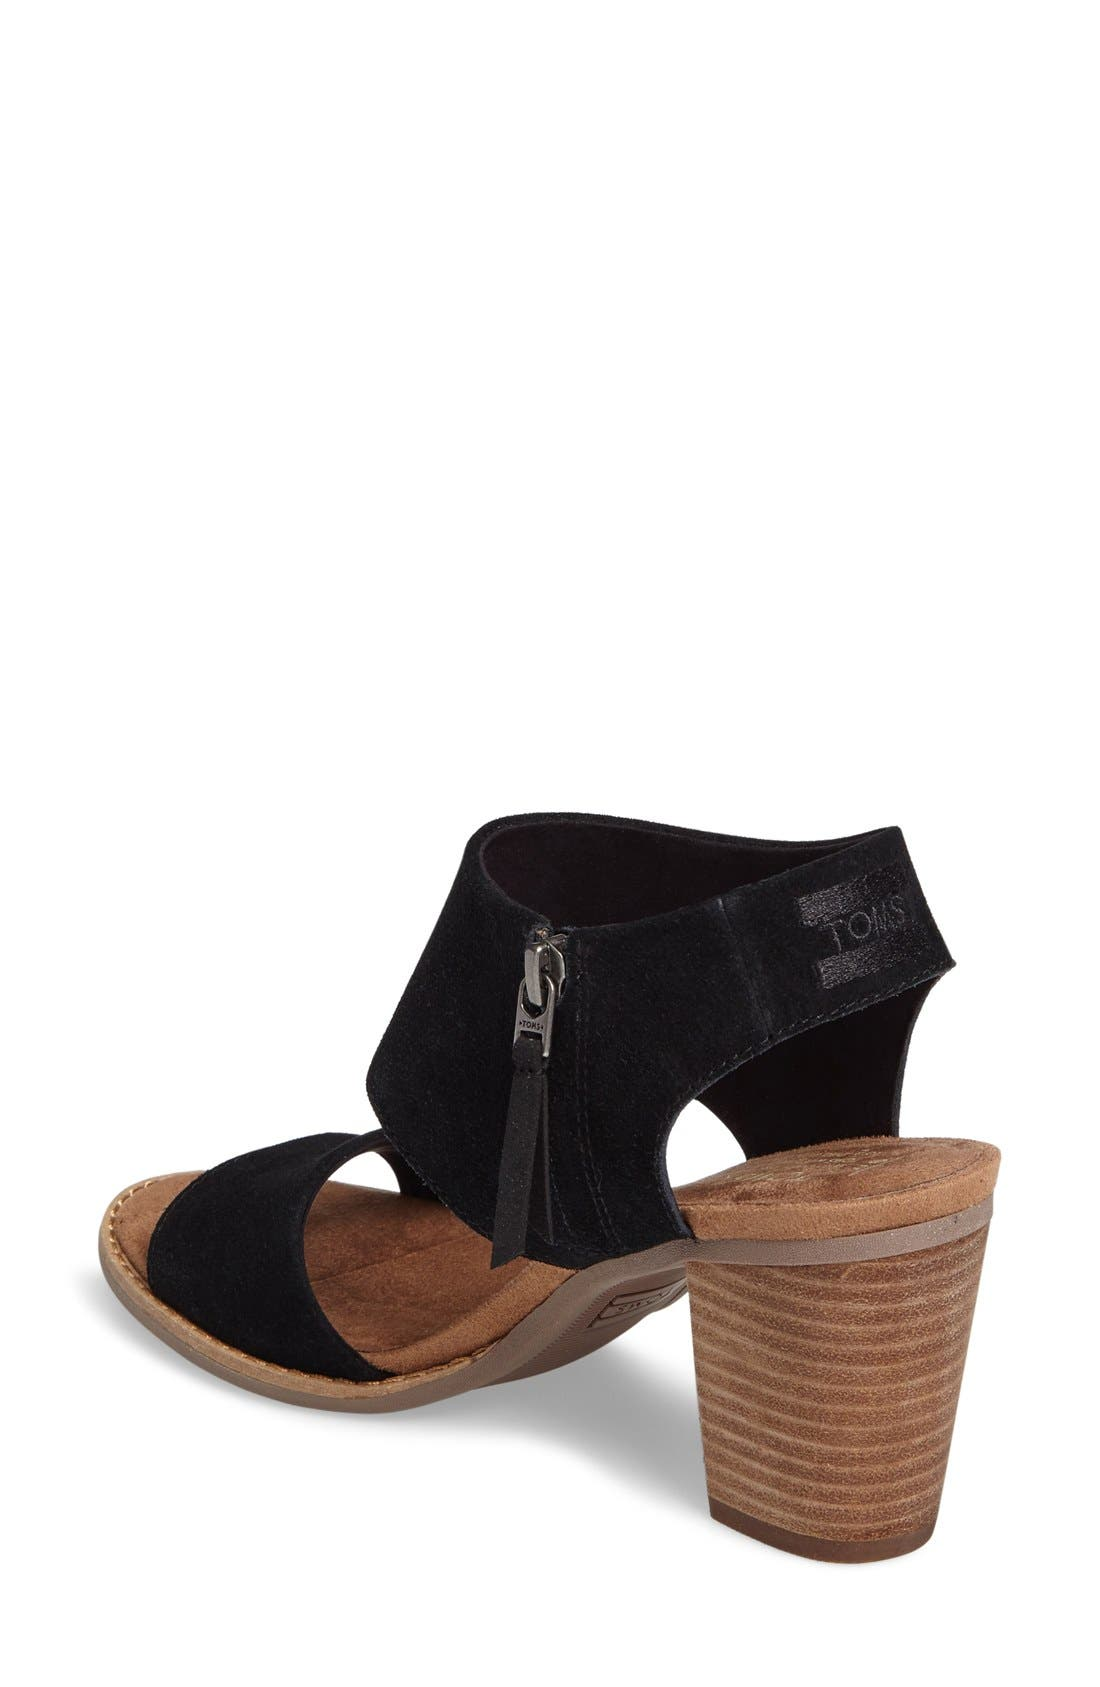 Majorca Sandal,                             Alternate thumbnail 5, color,                             BLACK